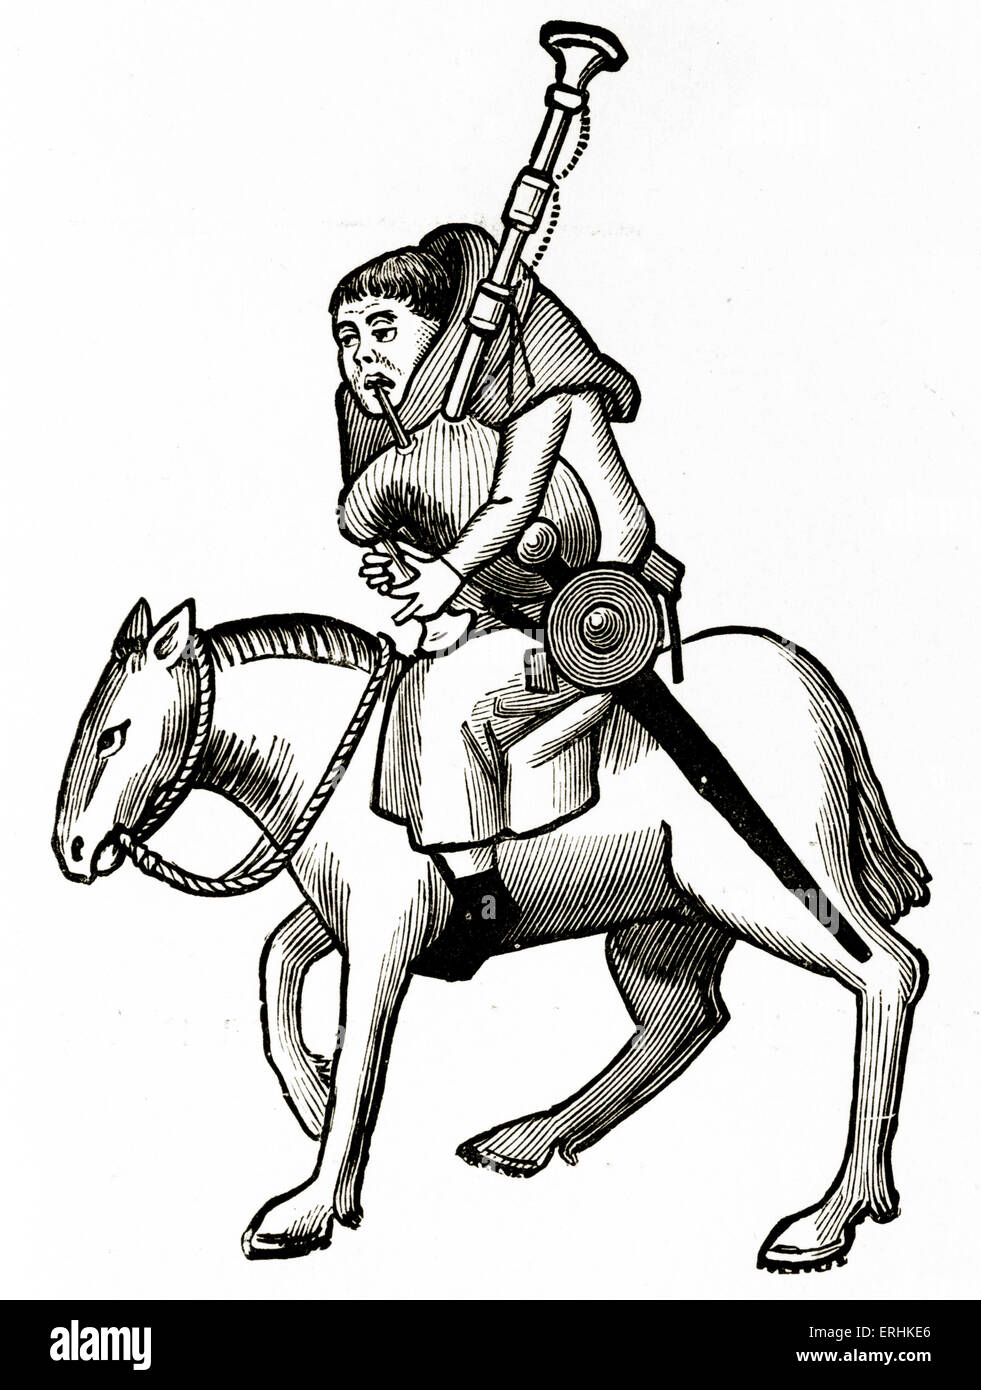 Geoffrey Chaucer ' s Canterbury Tales - The Miller on horseback.  English poet, c. 1343-1400. Ellesmere manuscript - Stock Image